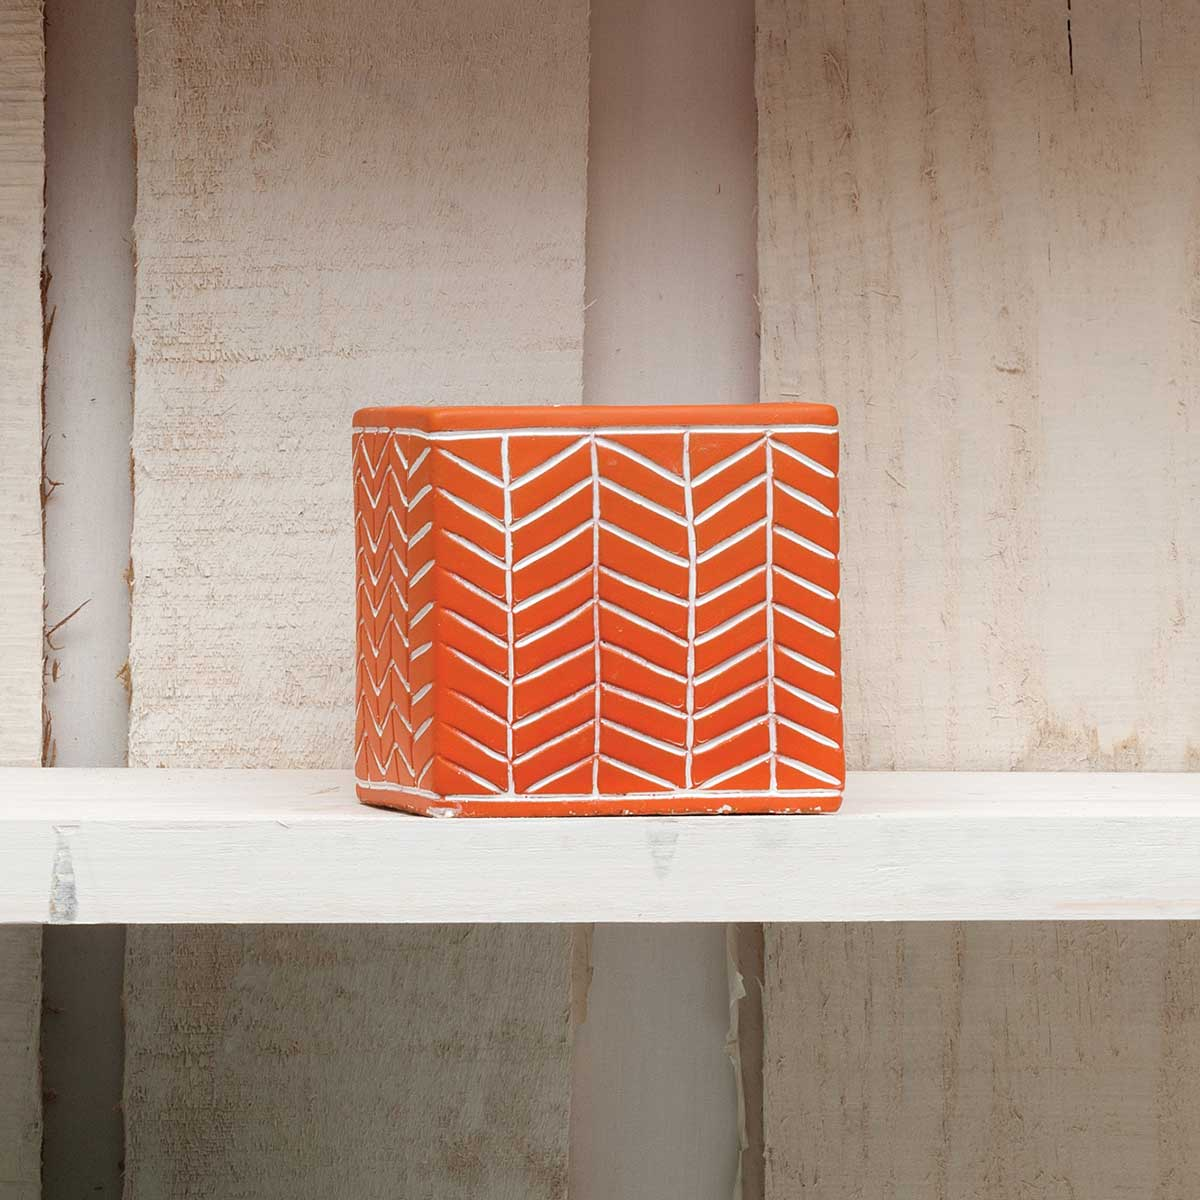 "CHEVRON SQUARE POT 3"" CORAL"